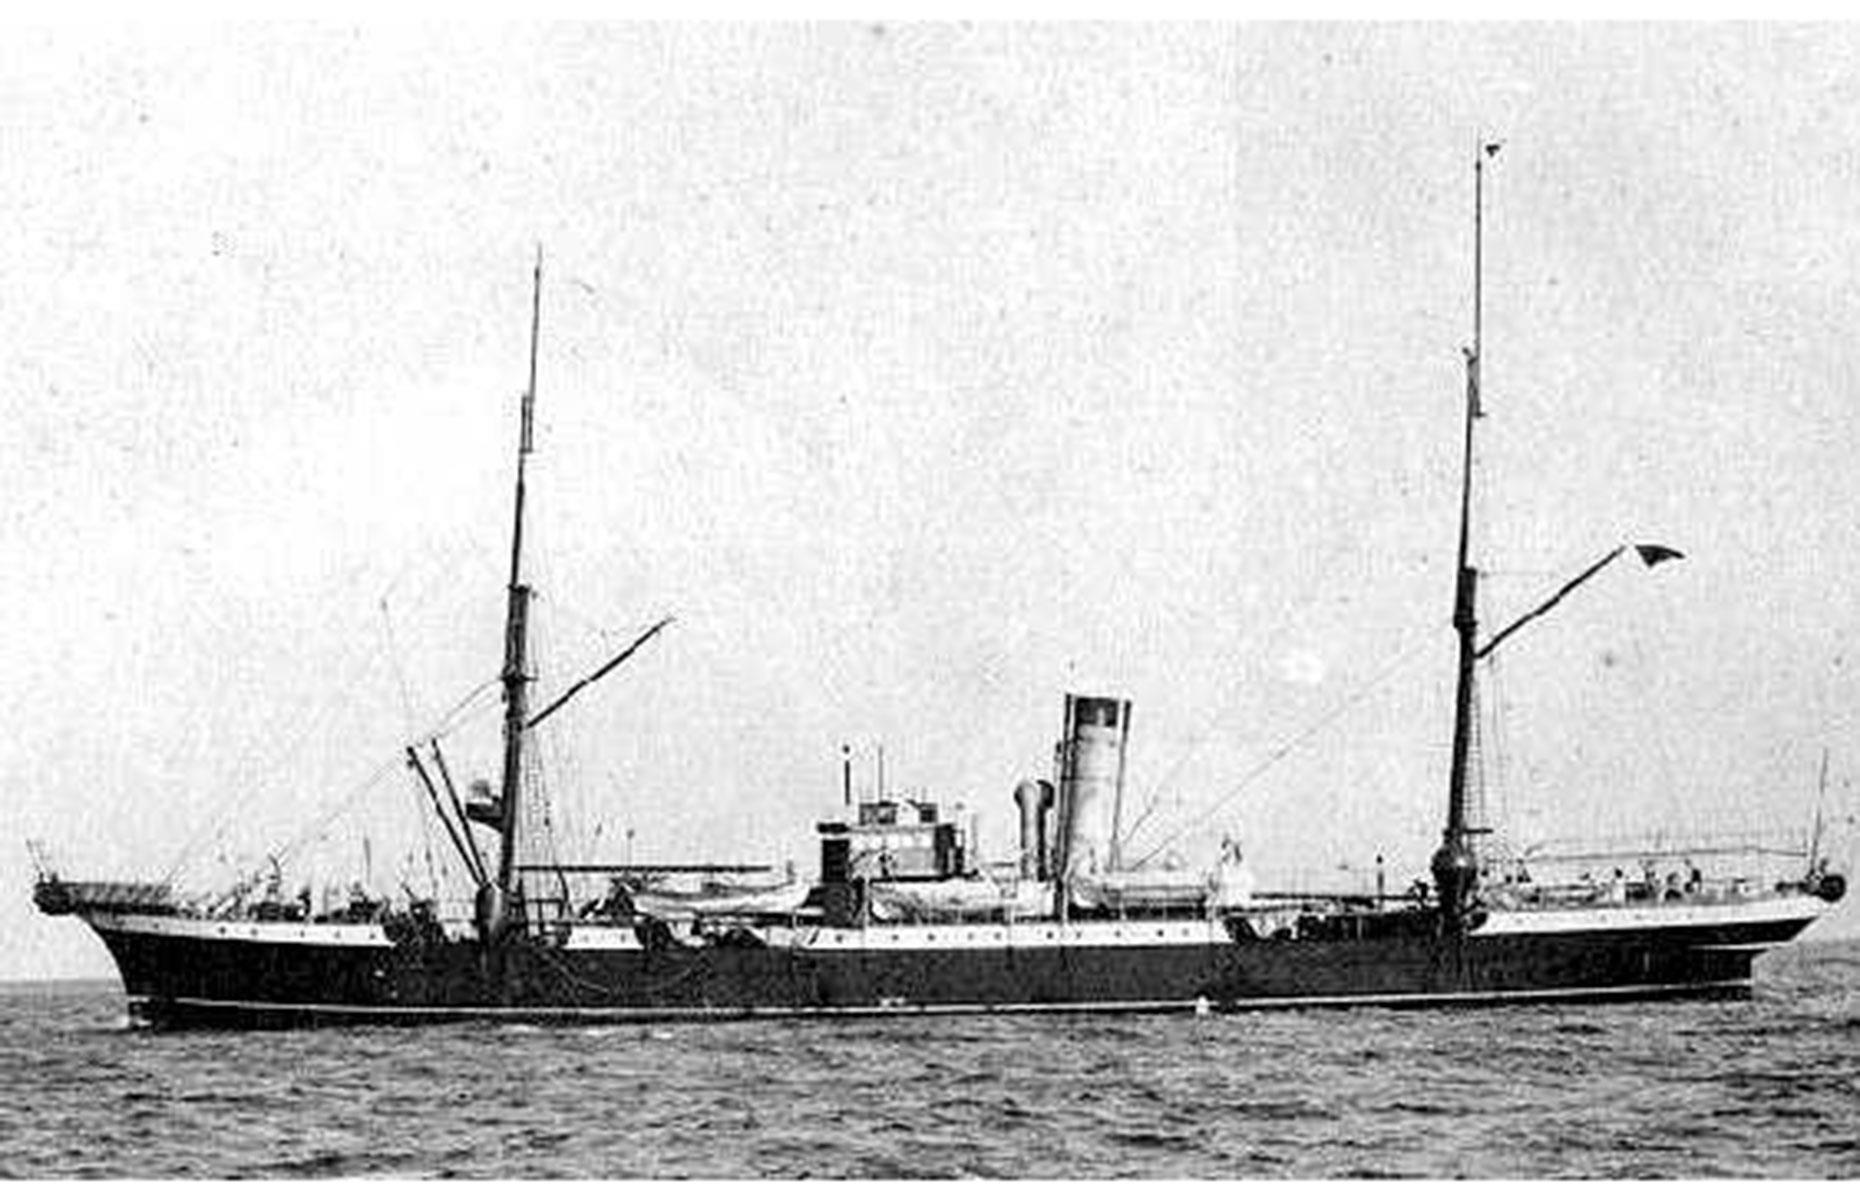 Slide 38 of 46: Four ships, including the SS Mackay-Bennett (pictured) were sent on a recovery mission on 17 April from Halifax. The ships collected both bodies and artifacts such as deckchairs. Over 100 of those who died are buried at Fairview Cemetery in the Nova Scotian city. There is also a highly informative exhibition at Halifax's Maritime Museum of the Atlantic that charts the city's role in the aftermath.